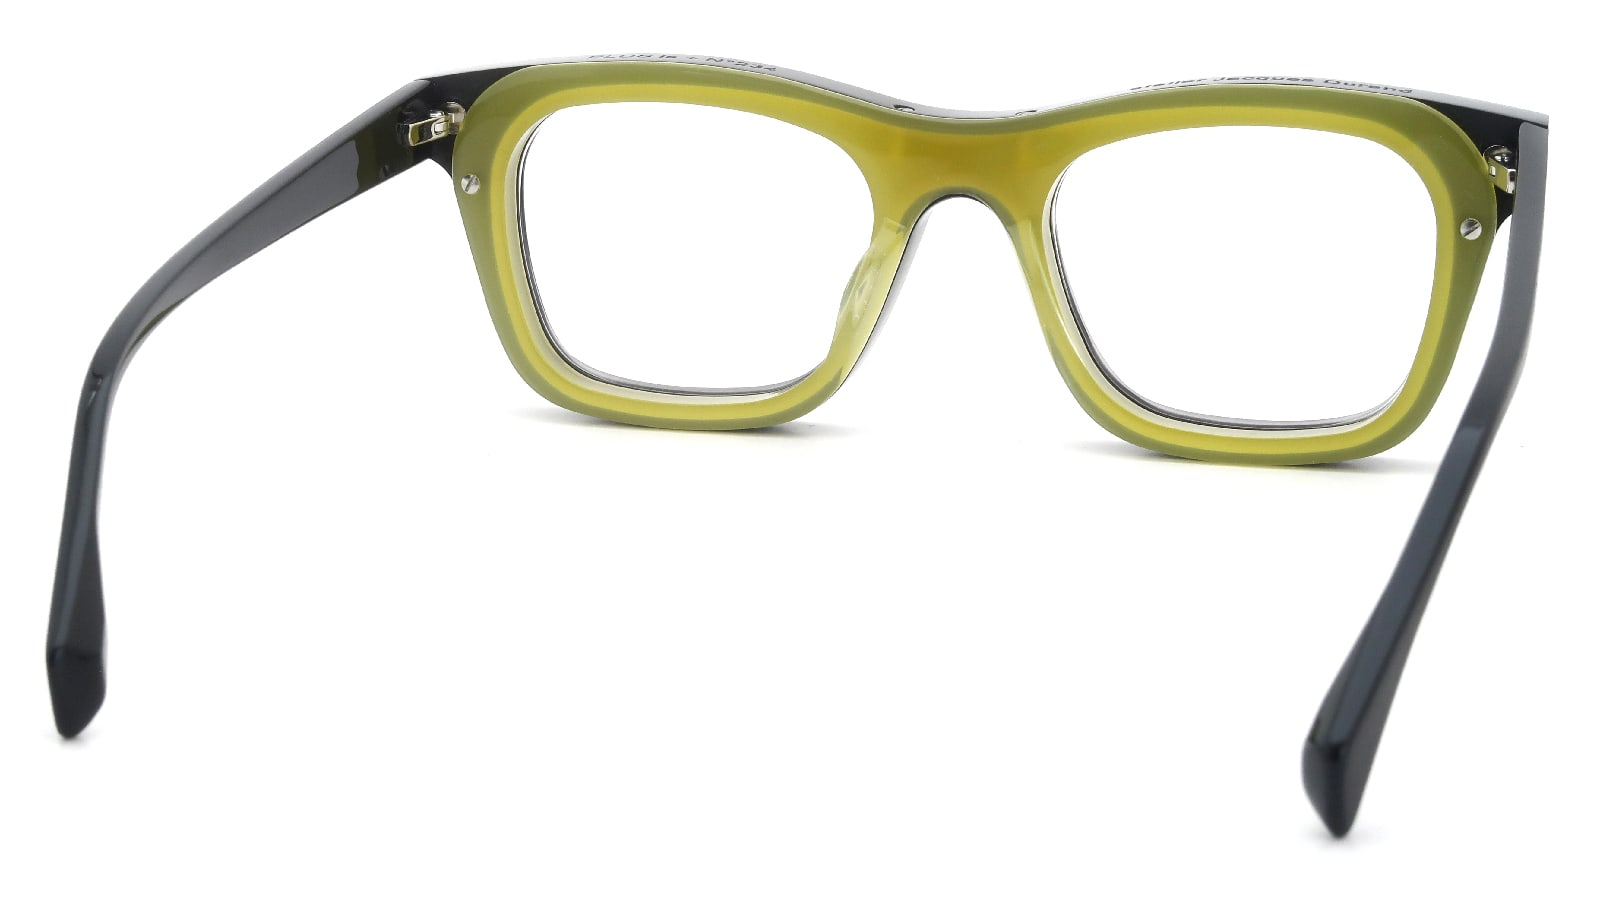 Jacques Durand Plus is + 234(INTRADOS) col.002 HM-black yellow 7